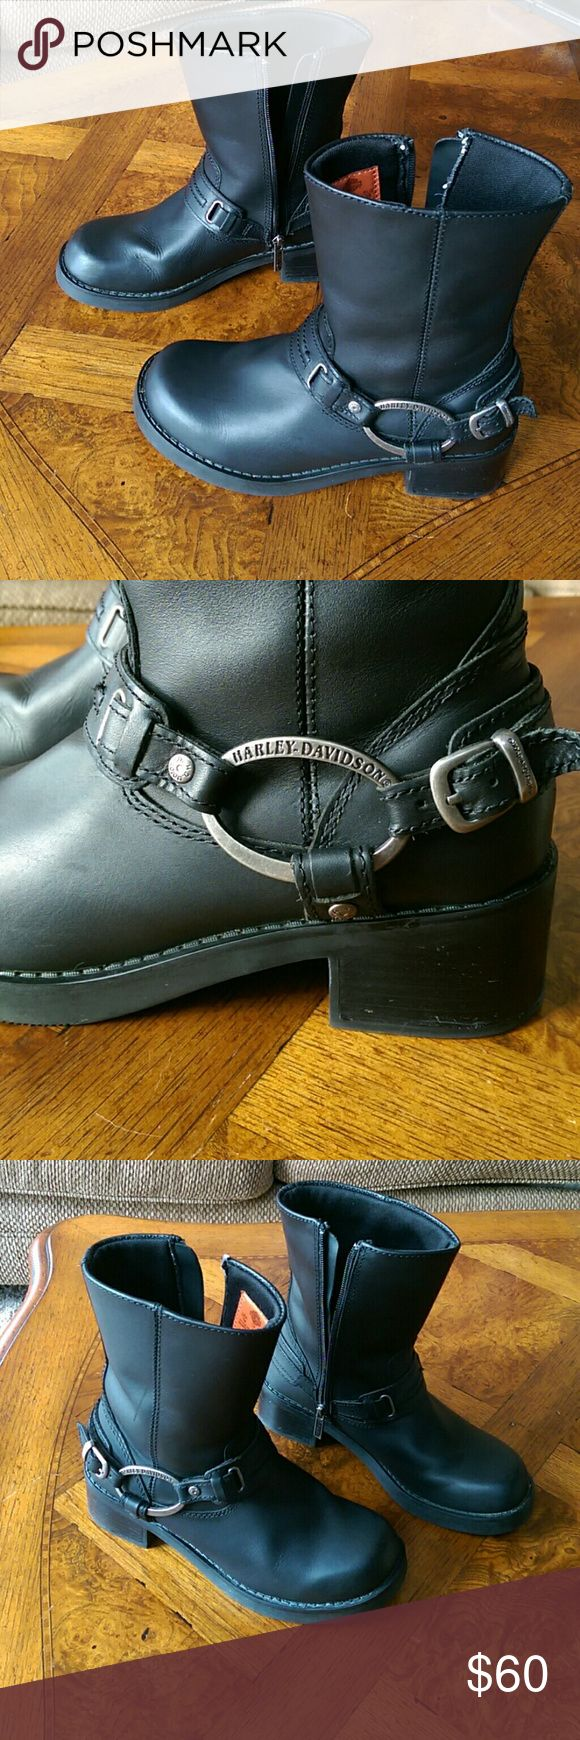 Harley Davidson Boots Women's Harley Davidson Boots size 7. Black leather. Only worn a few times. Great condition!! Harley-Davidson Shoes